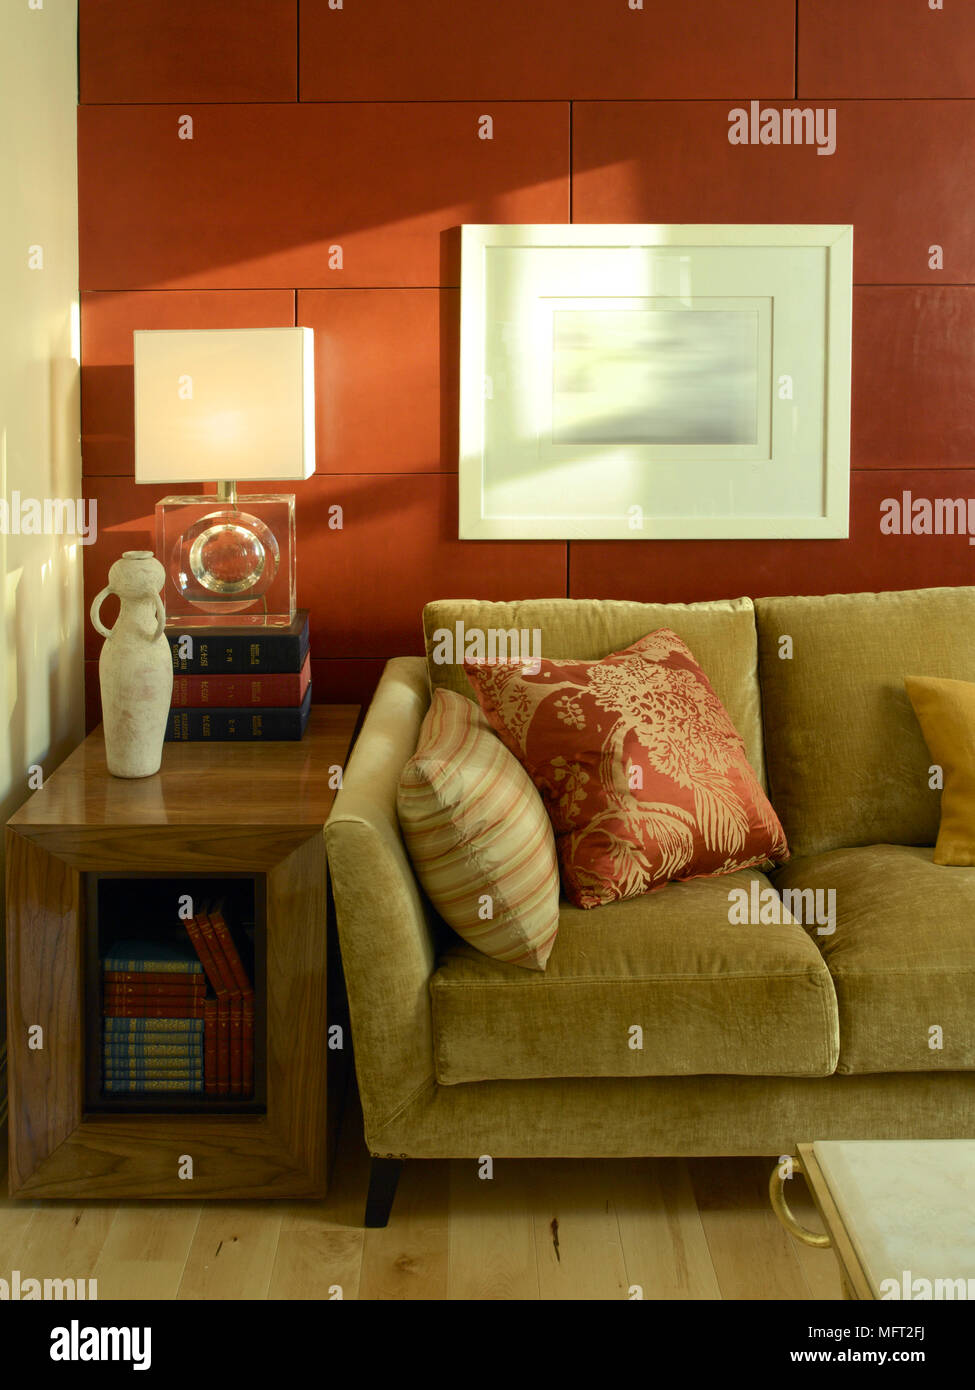 Modern sitting room detail with olive green sofa, red tile wall, and wooden side table. Stock Photo